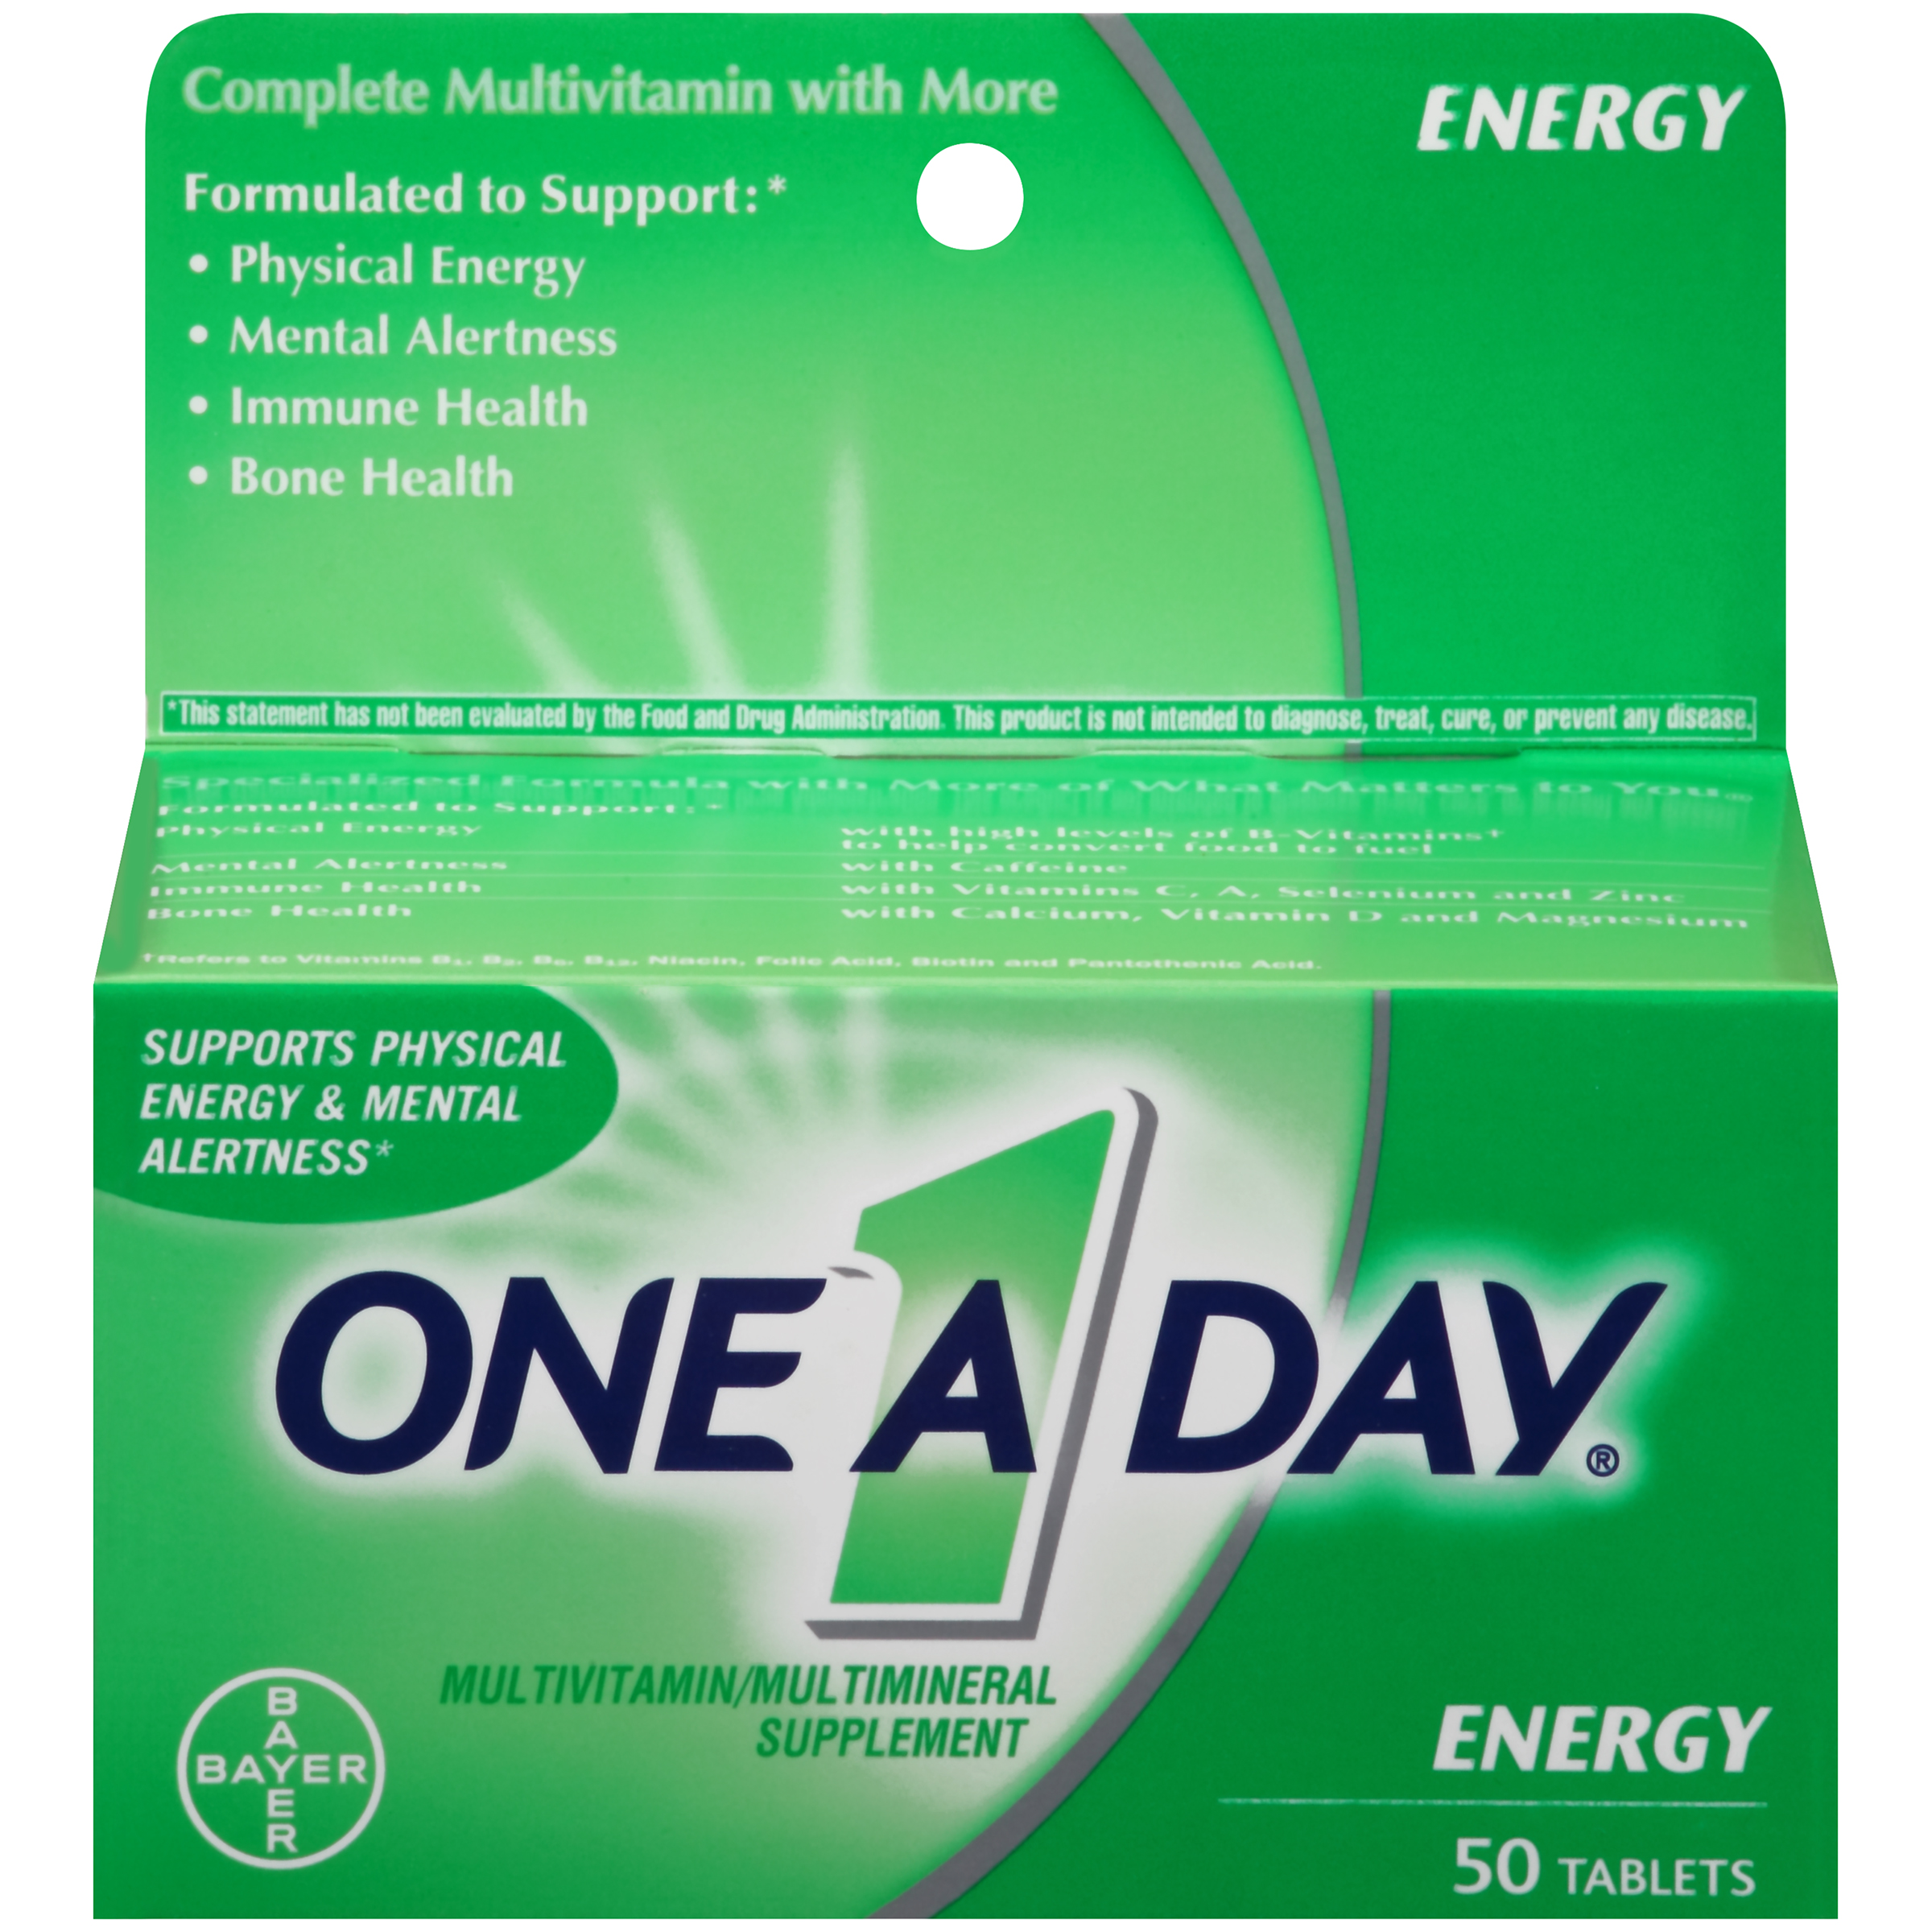 One A Day Energy Multivitamin, 50 Count